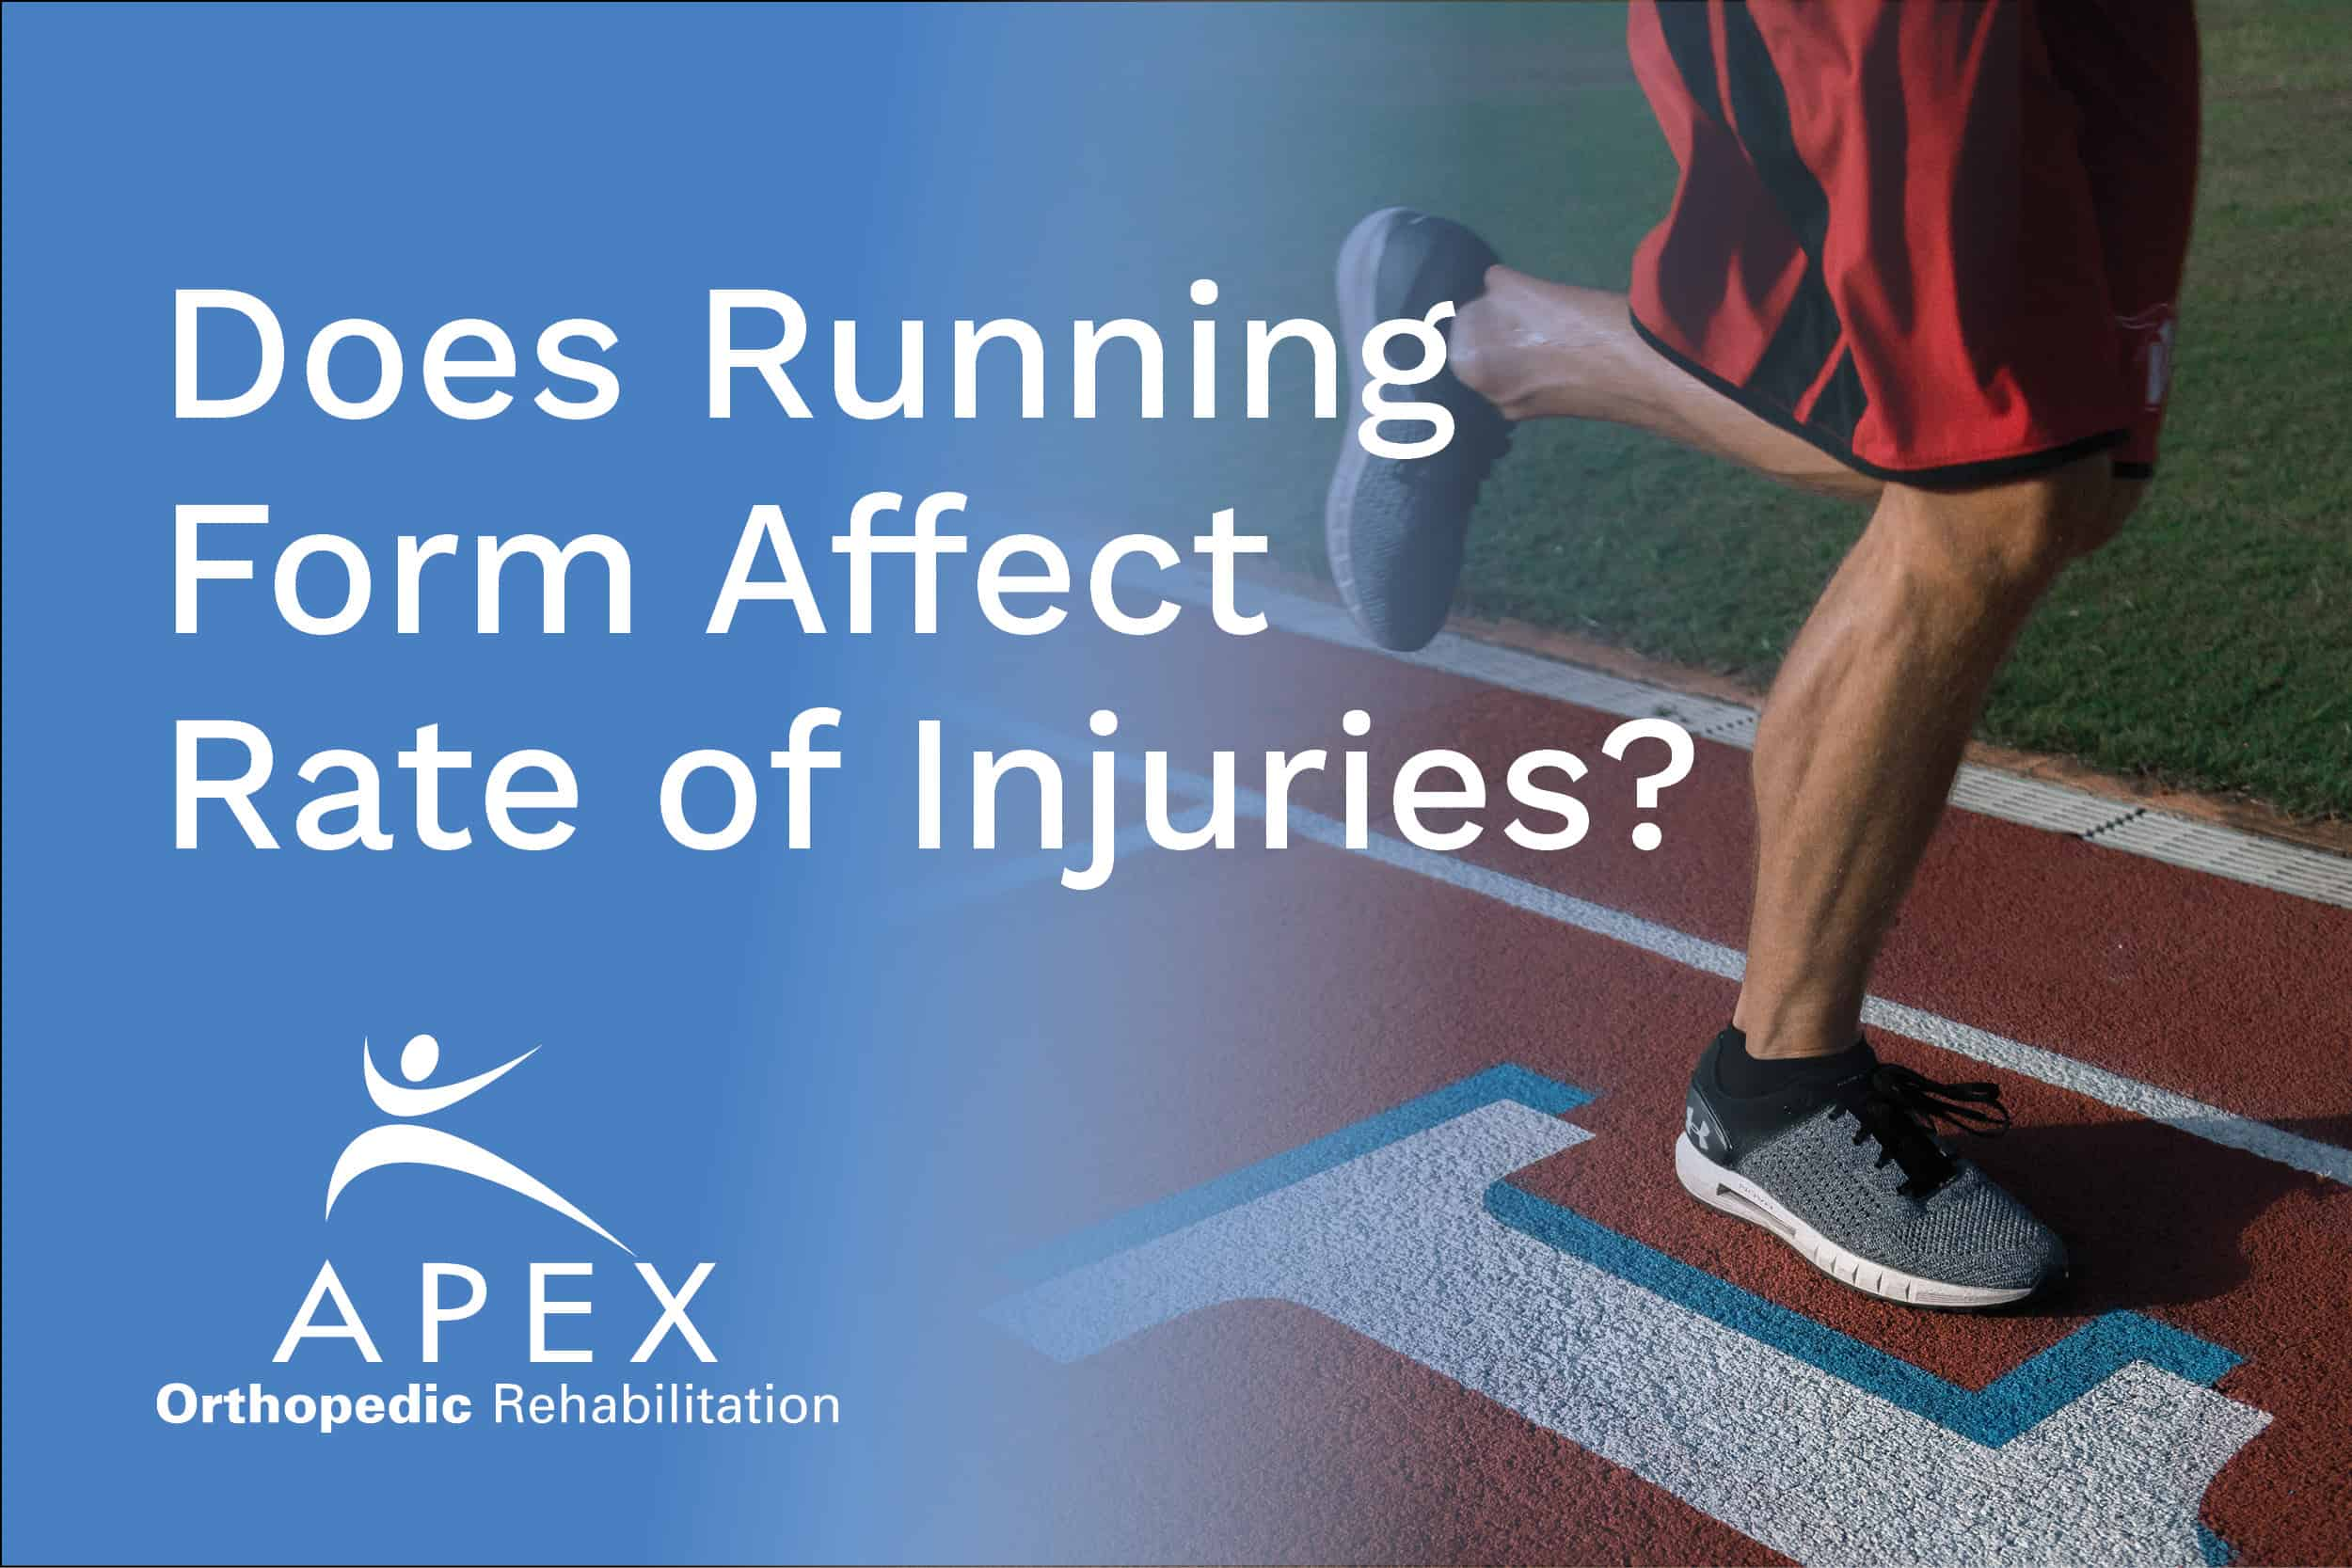 Does Running Form Affect Rate of Injuries?